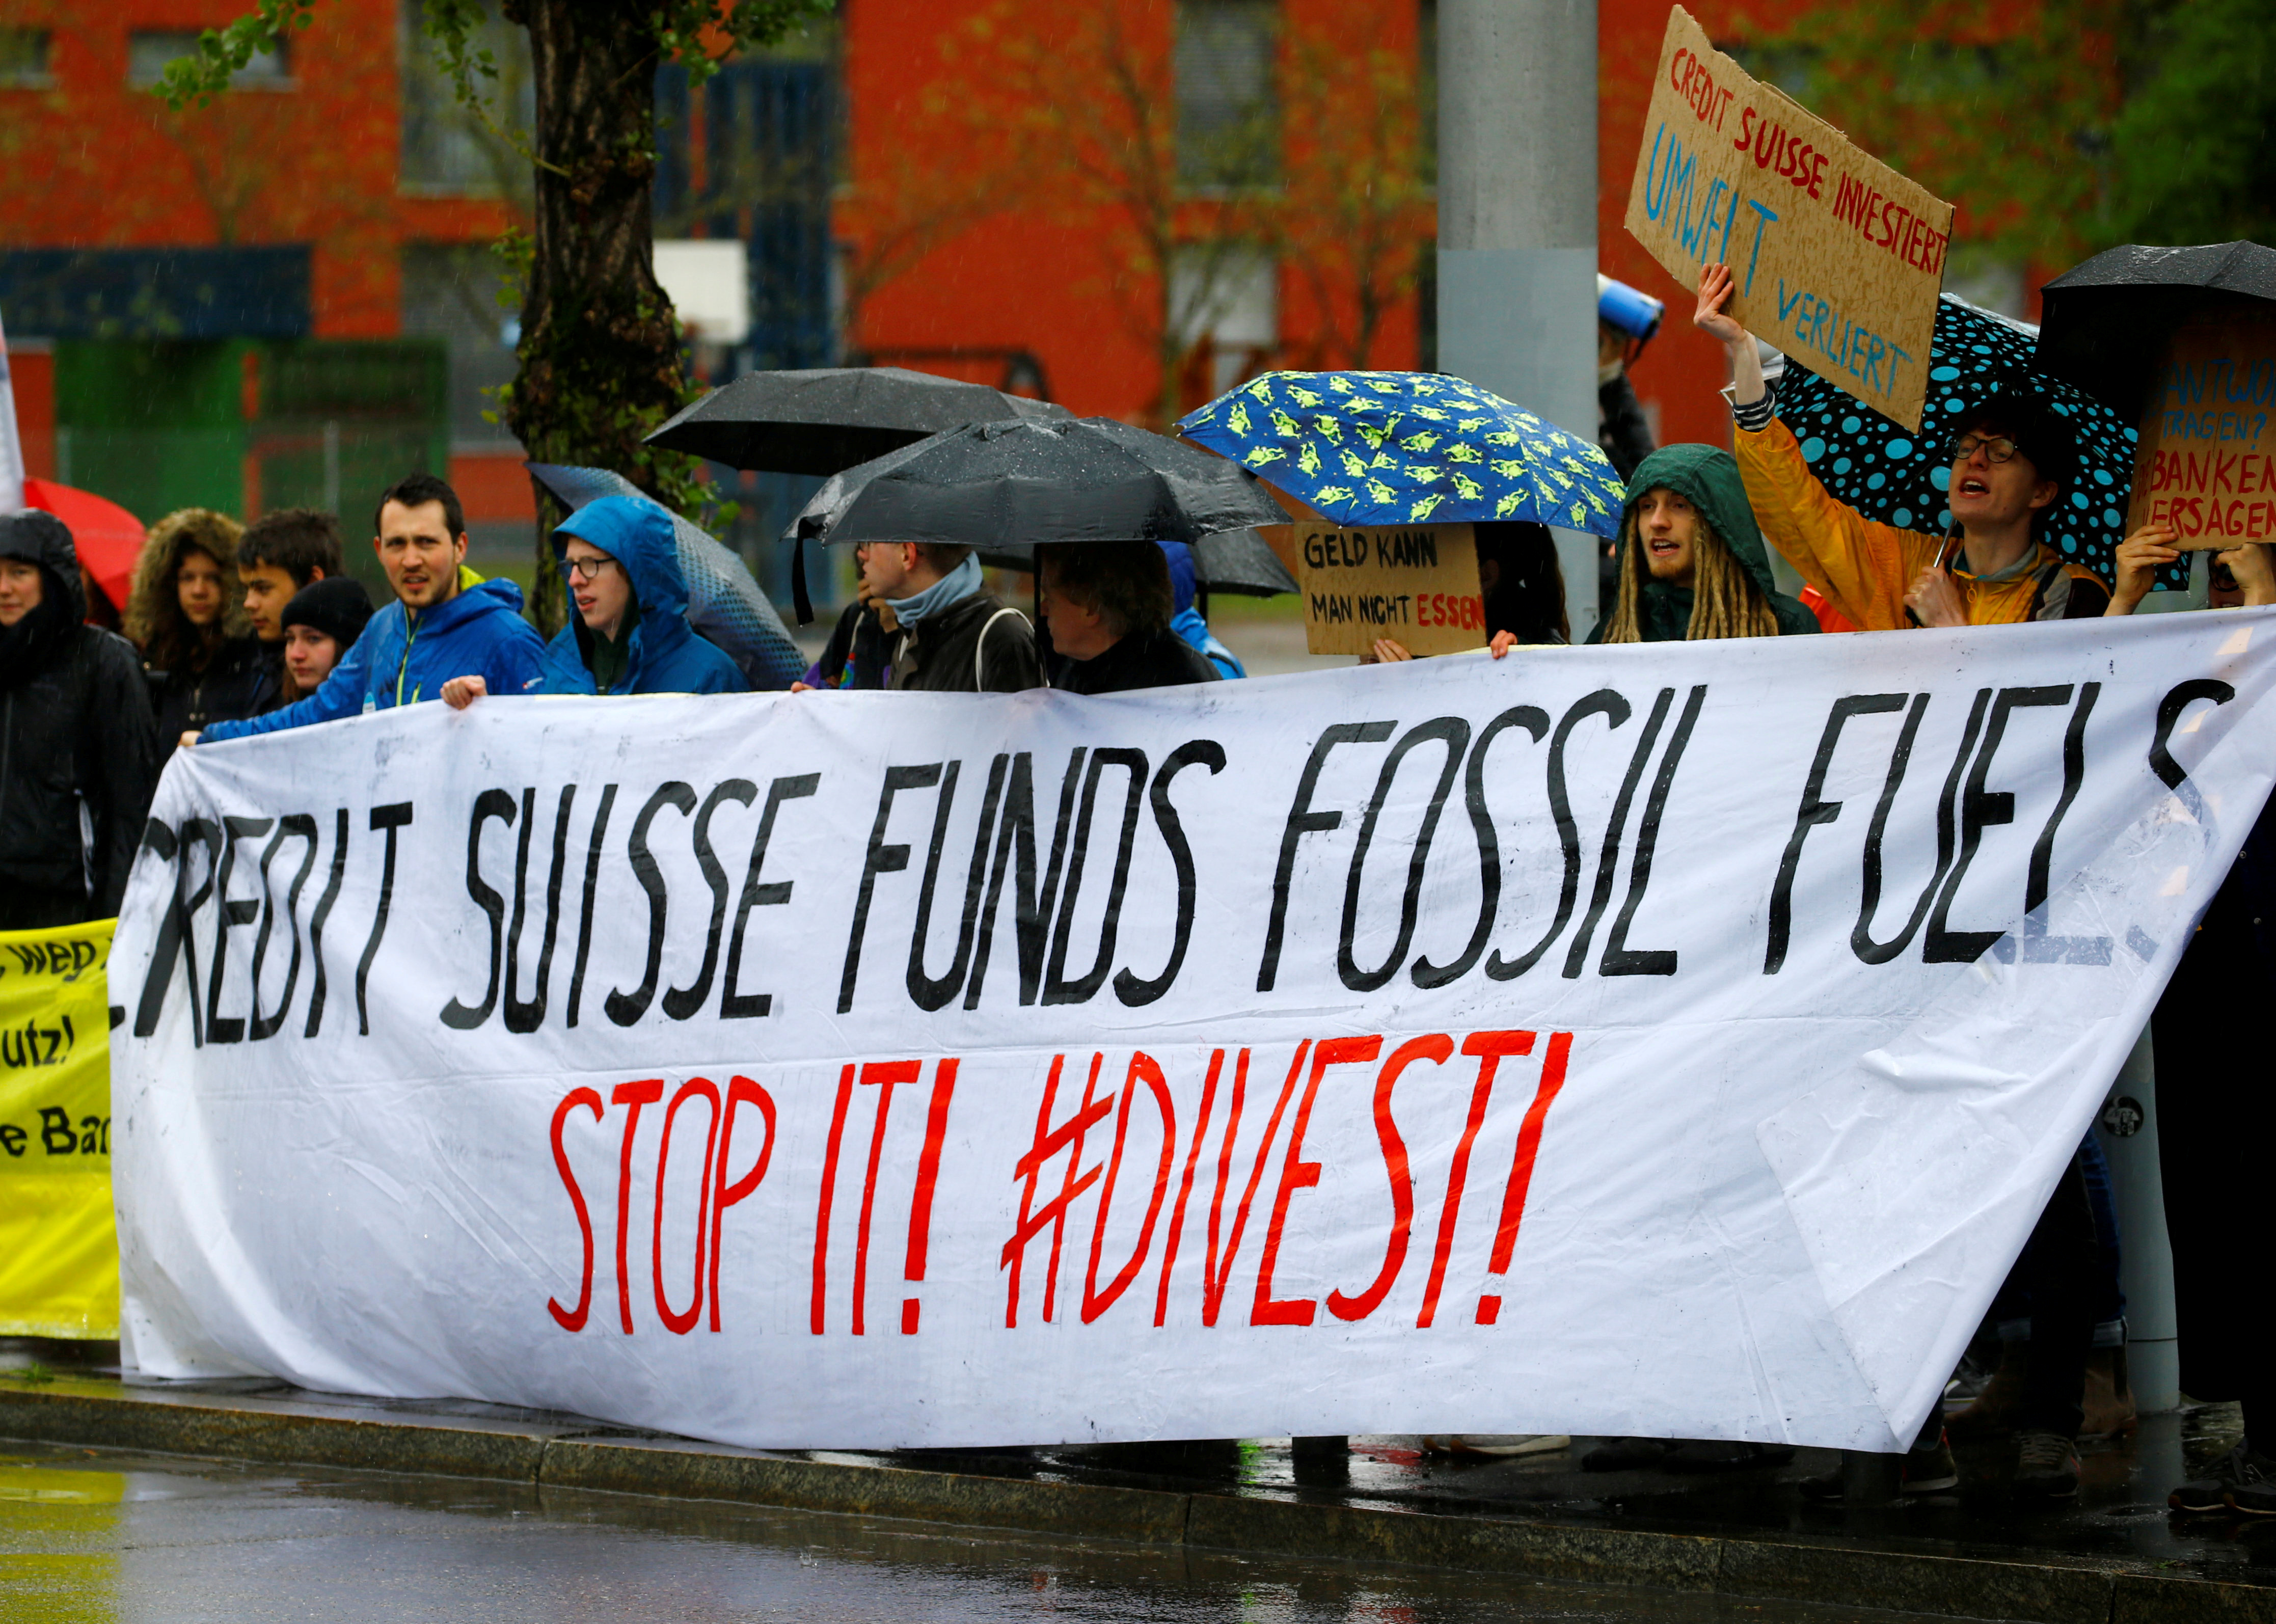 Climate protestors display a banner outside the venue where Swiss bank Credit Suisse holds the company's annual shareholder meeting in Zurich, Switzerland April 26, 2019.  REUTERS/Arnd Wiegmann/File Photo